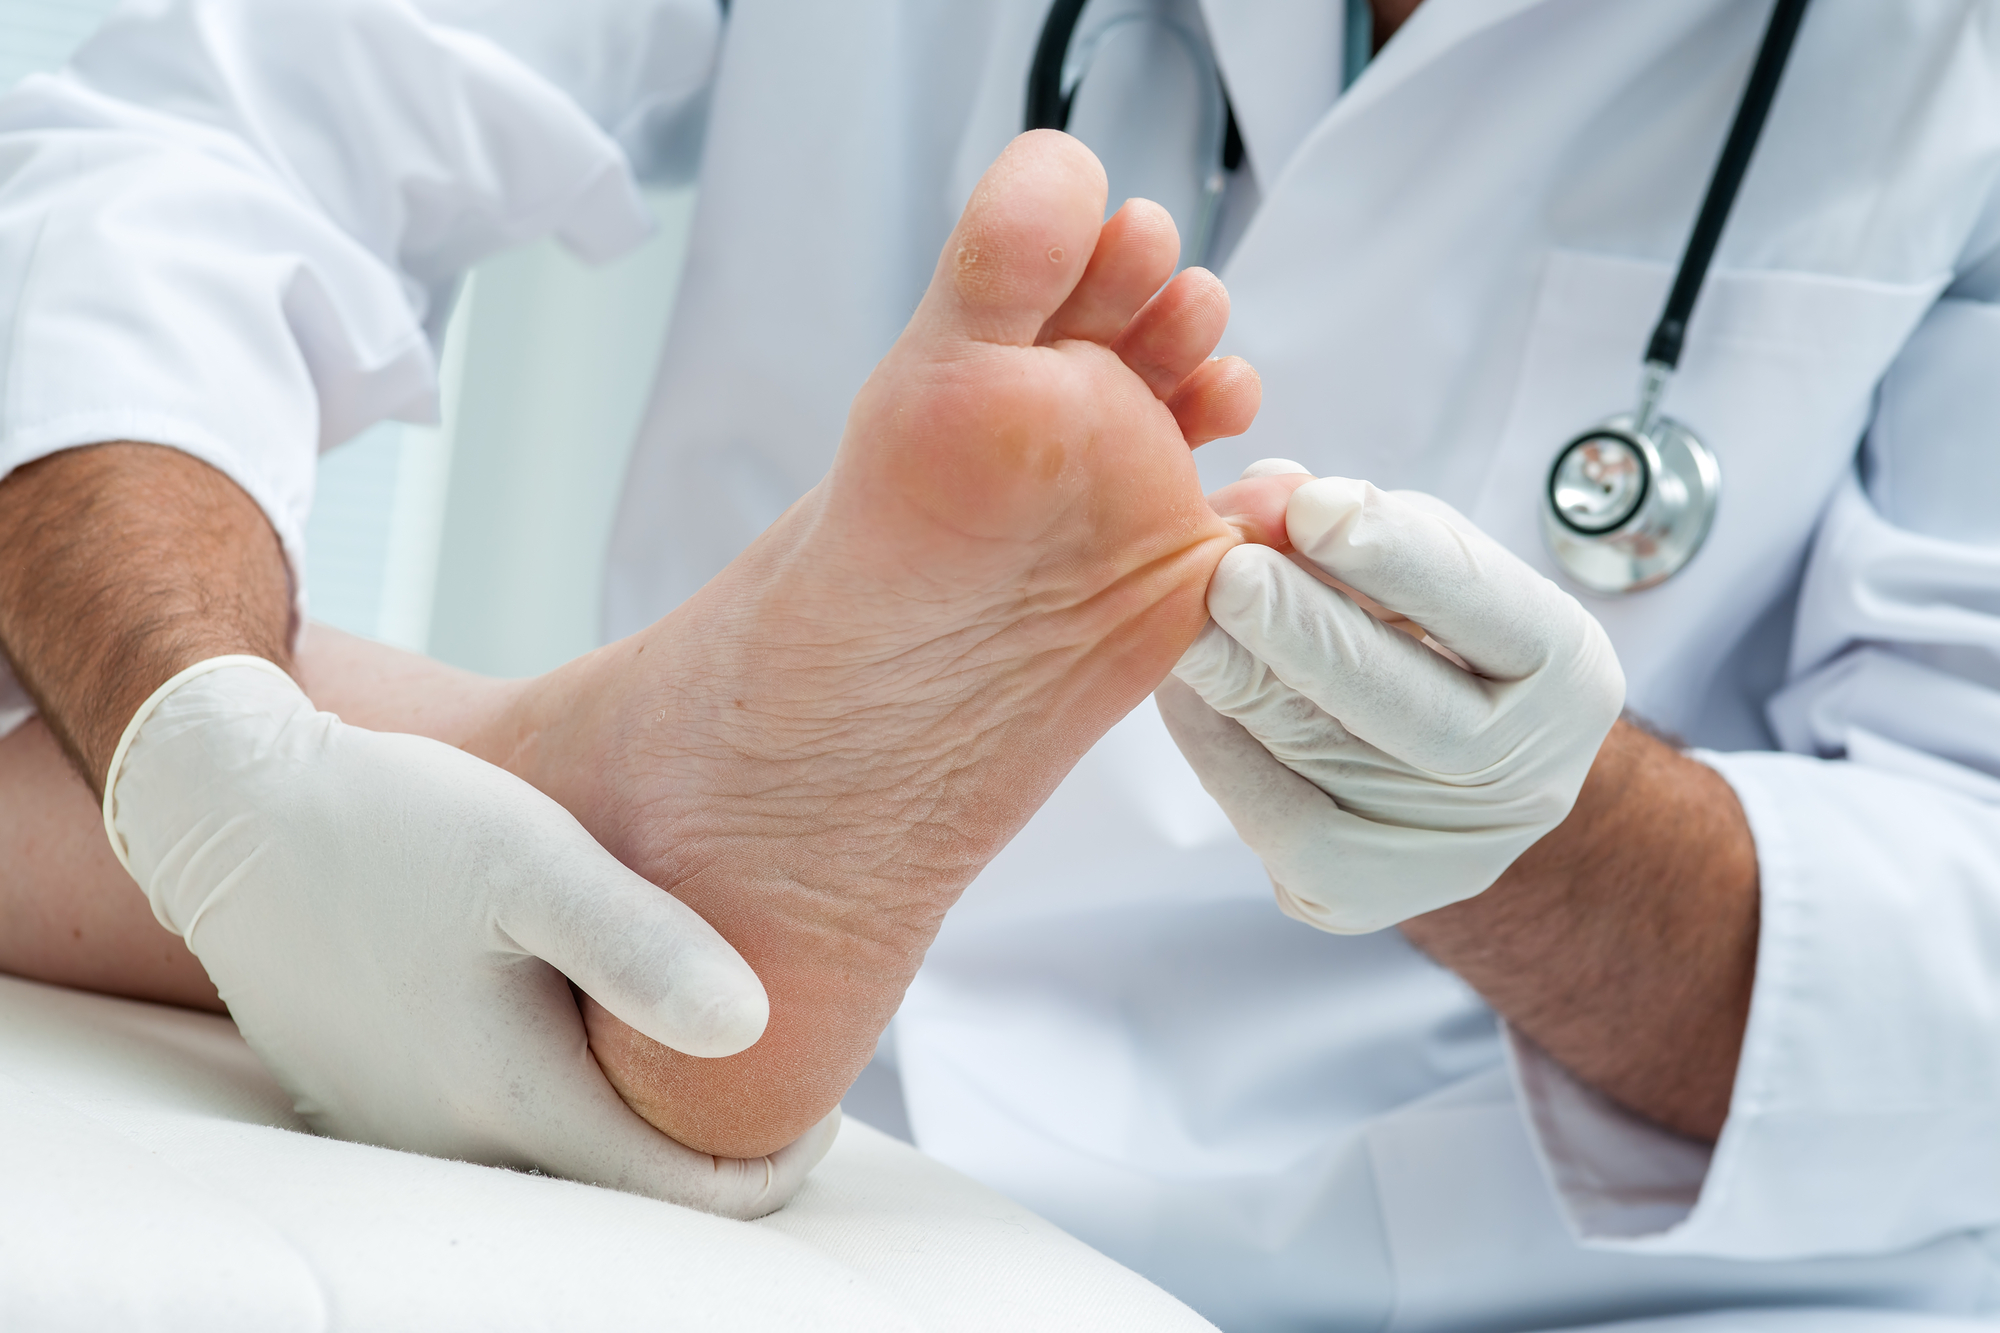 What is pain after bunion surgery like?